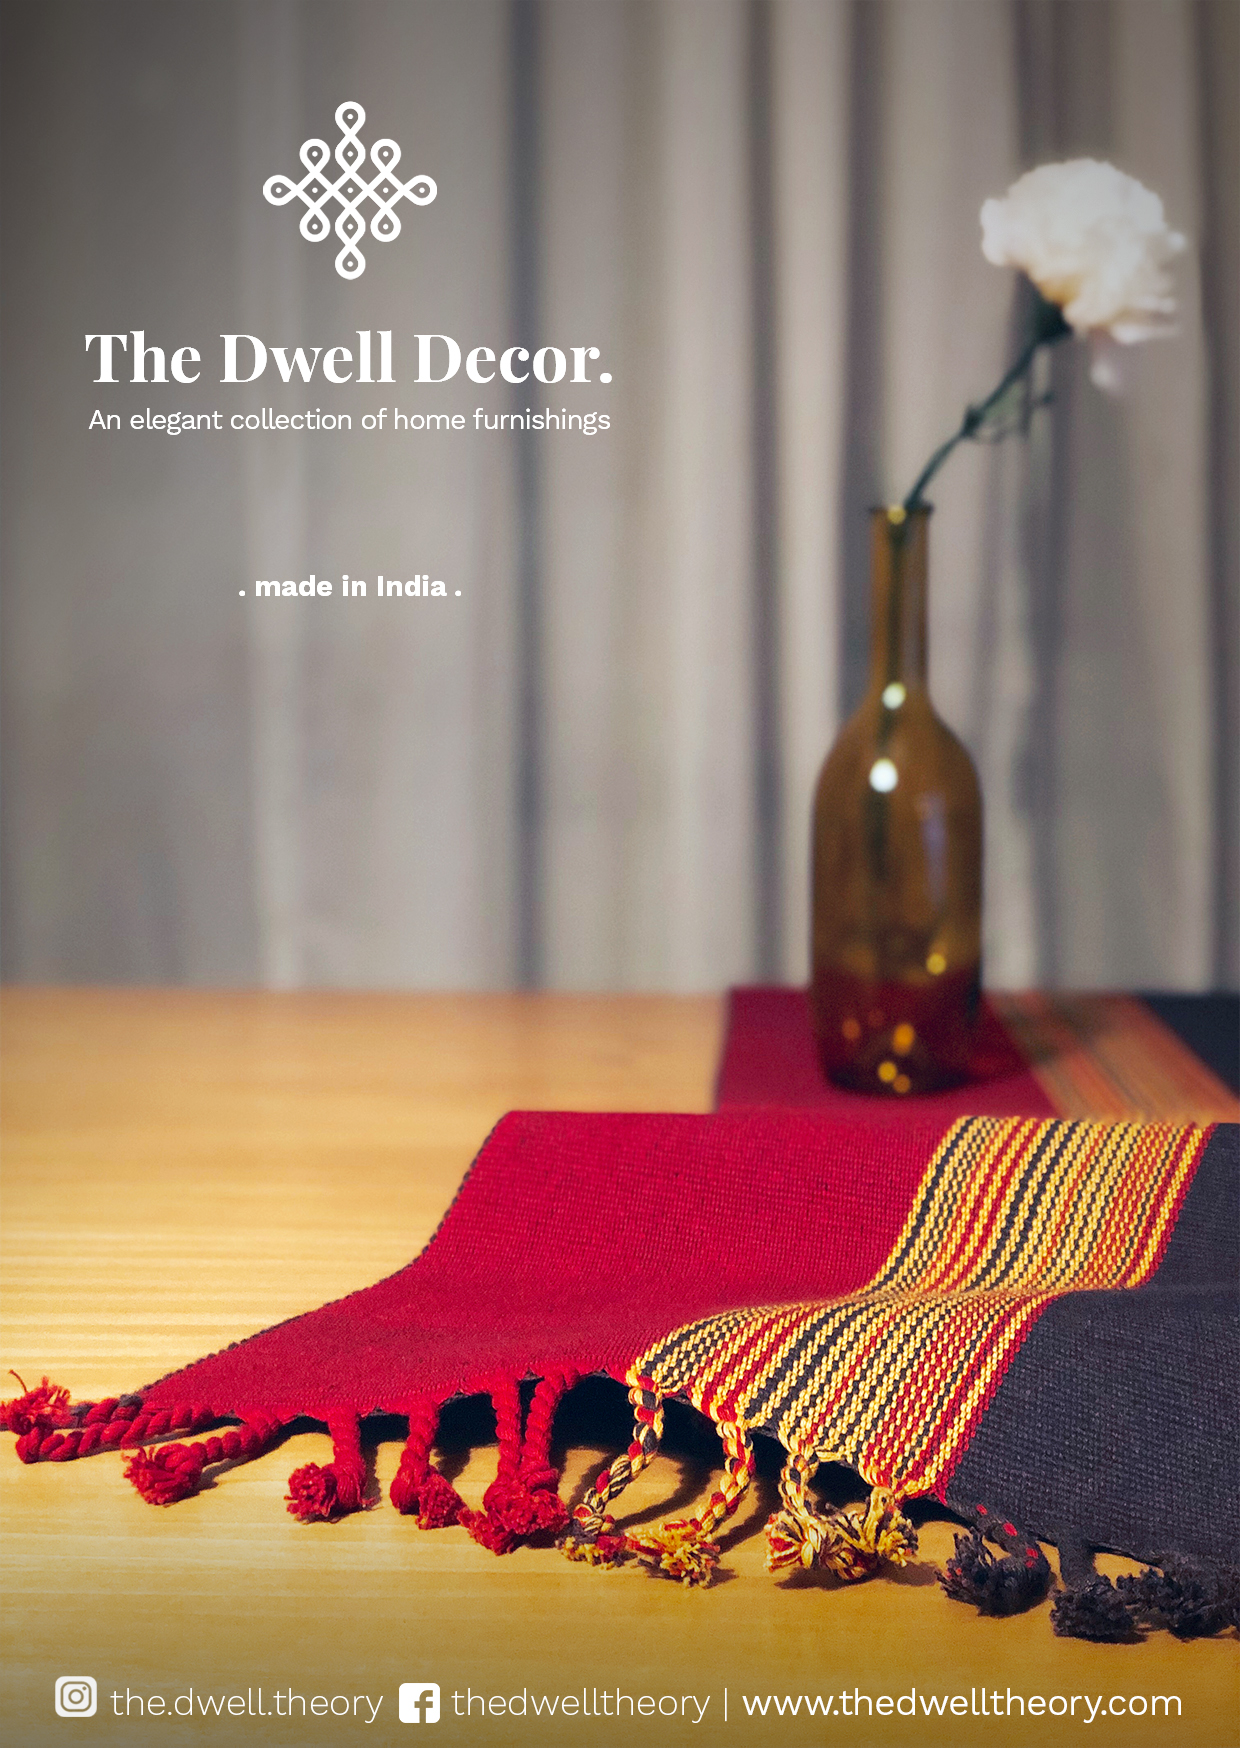 The Dwell Decor - Tortona Rocks 2019 in via Tortona 31 - 2